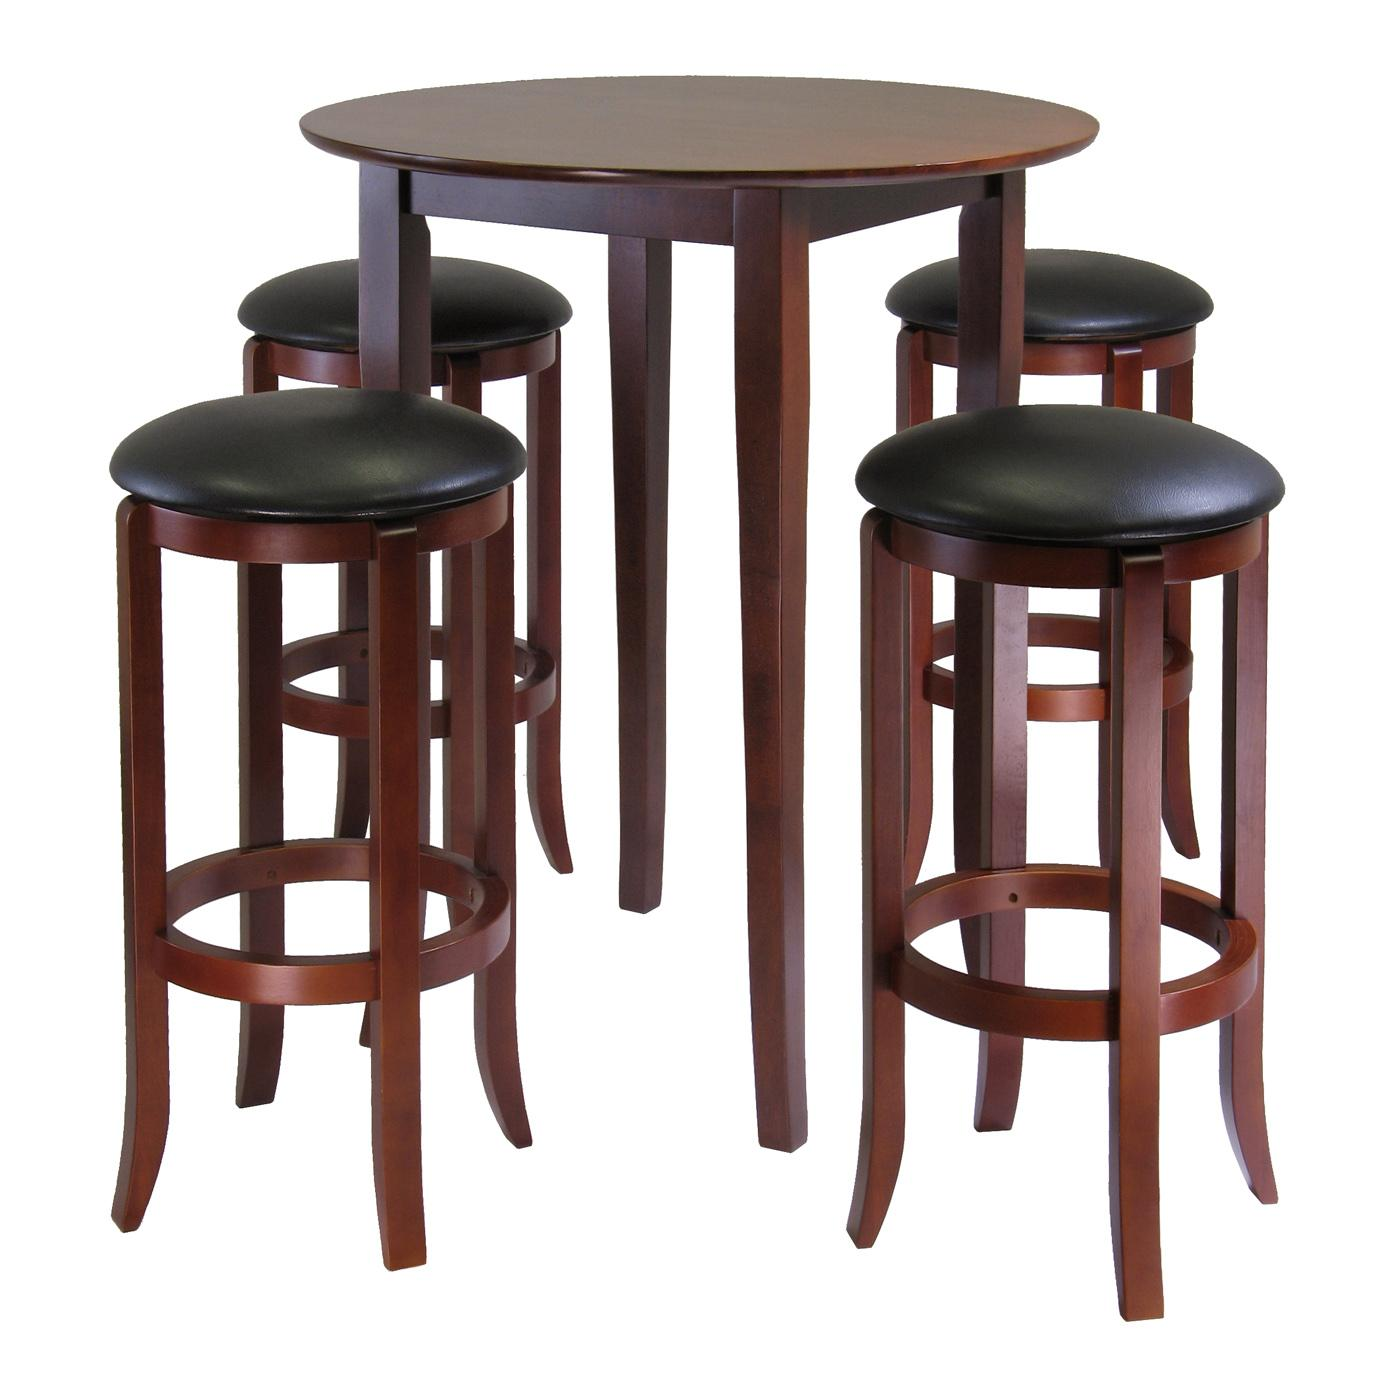 Amazon Winsome Fiona 5 Piece Round High Pub Table Set in